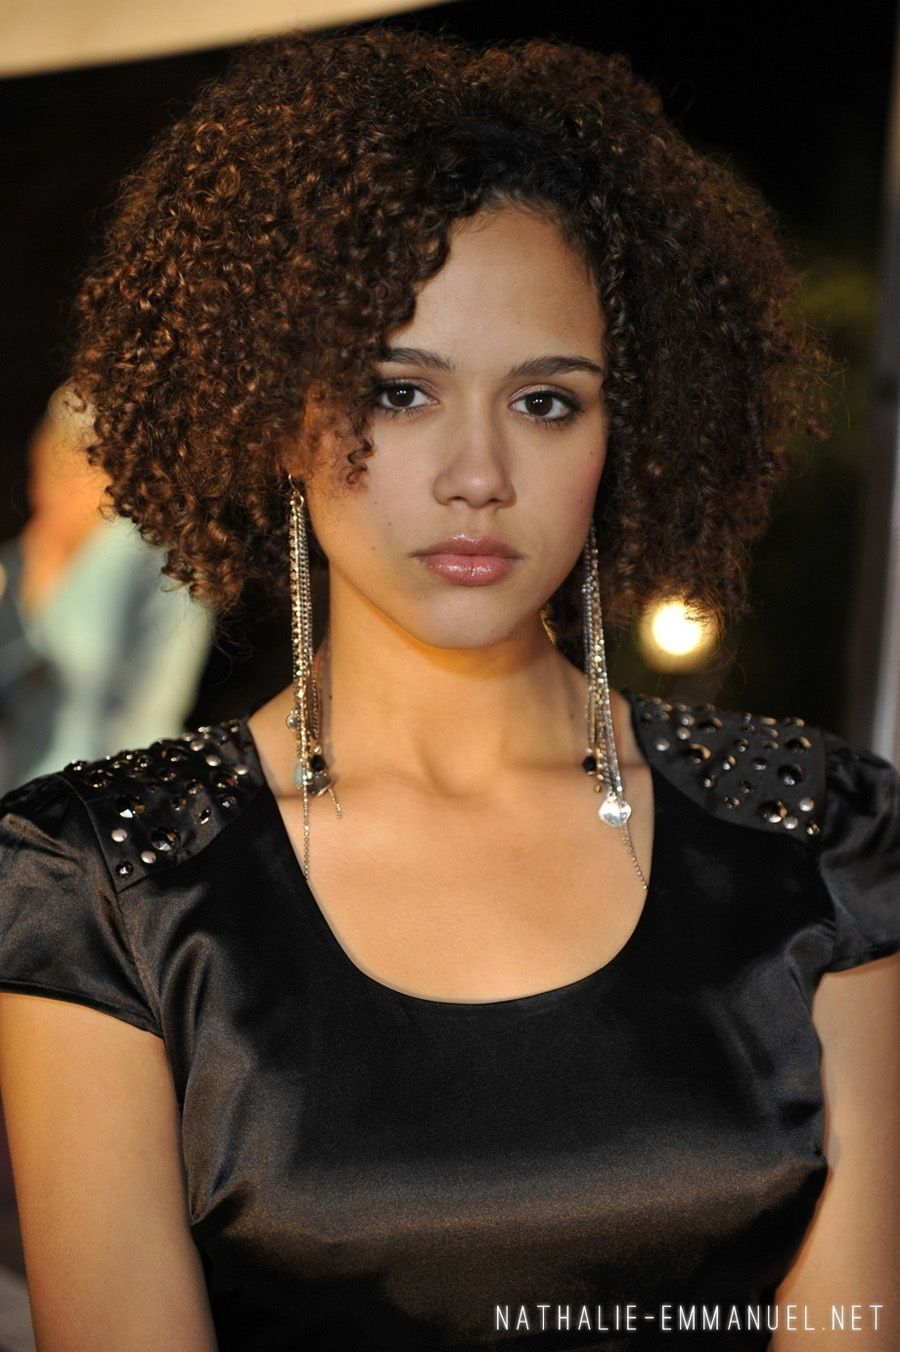 Forum on this topic: K. T. Stevens, nathalie-emmanuel-born-1989/